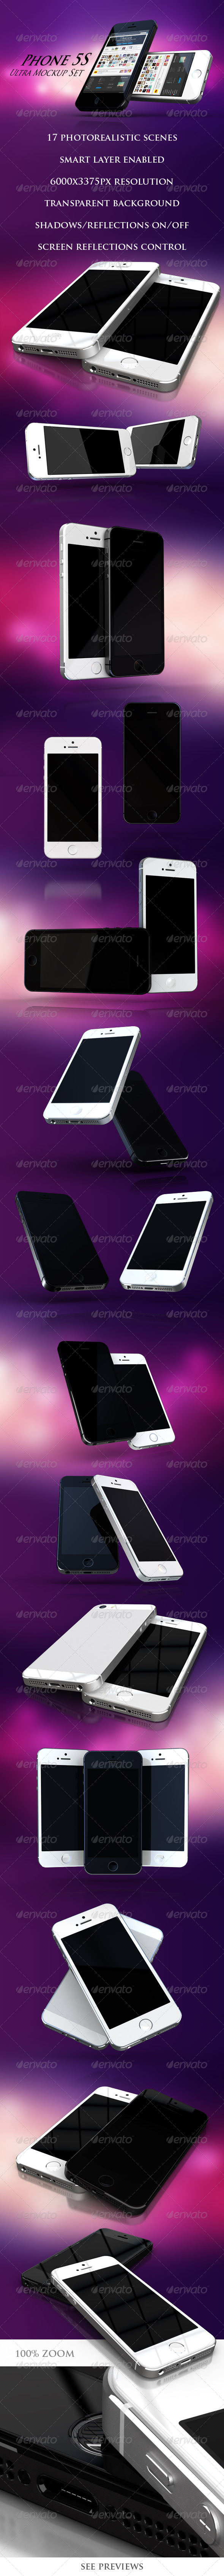 Phone 5S Ultra Mockup Set - Mobile Displays